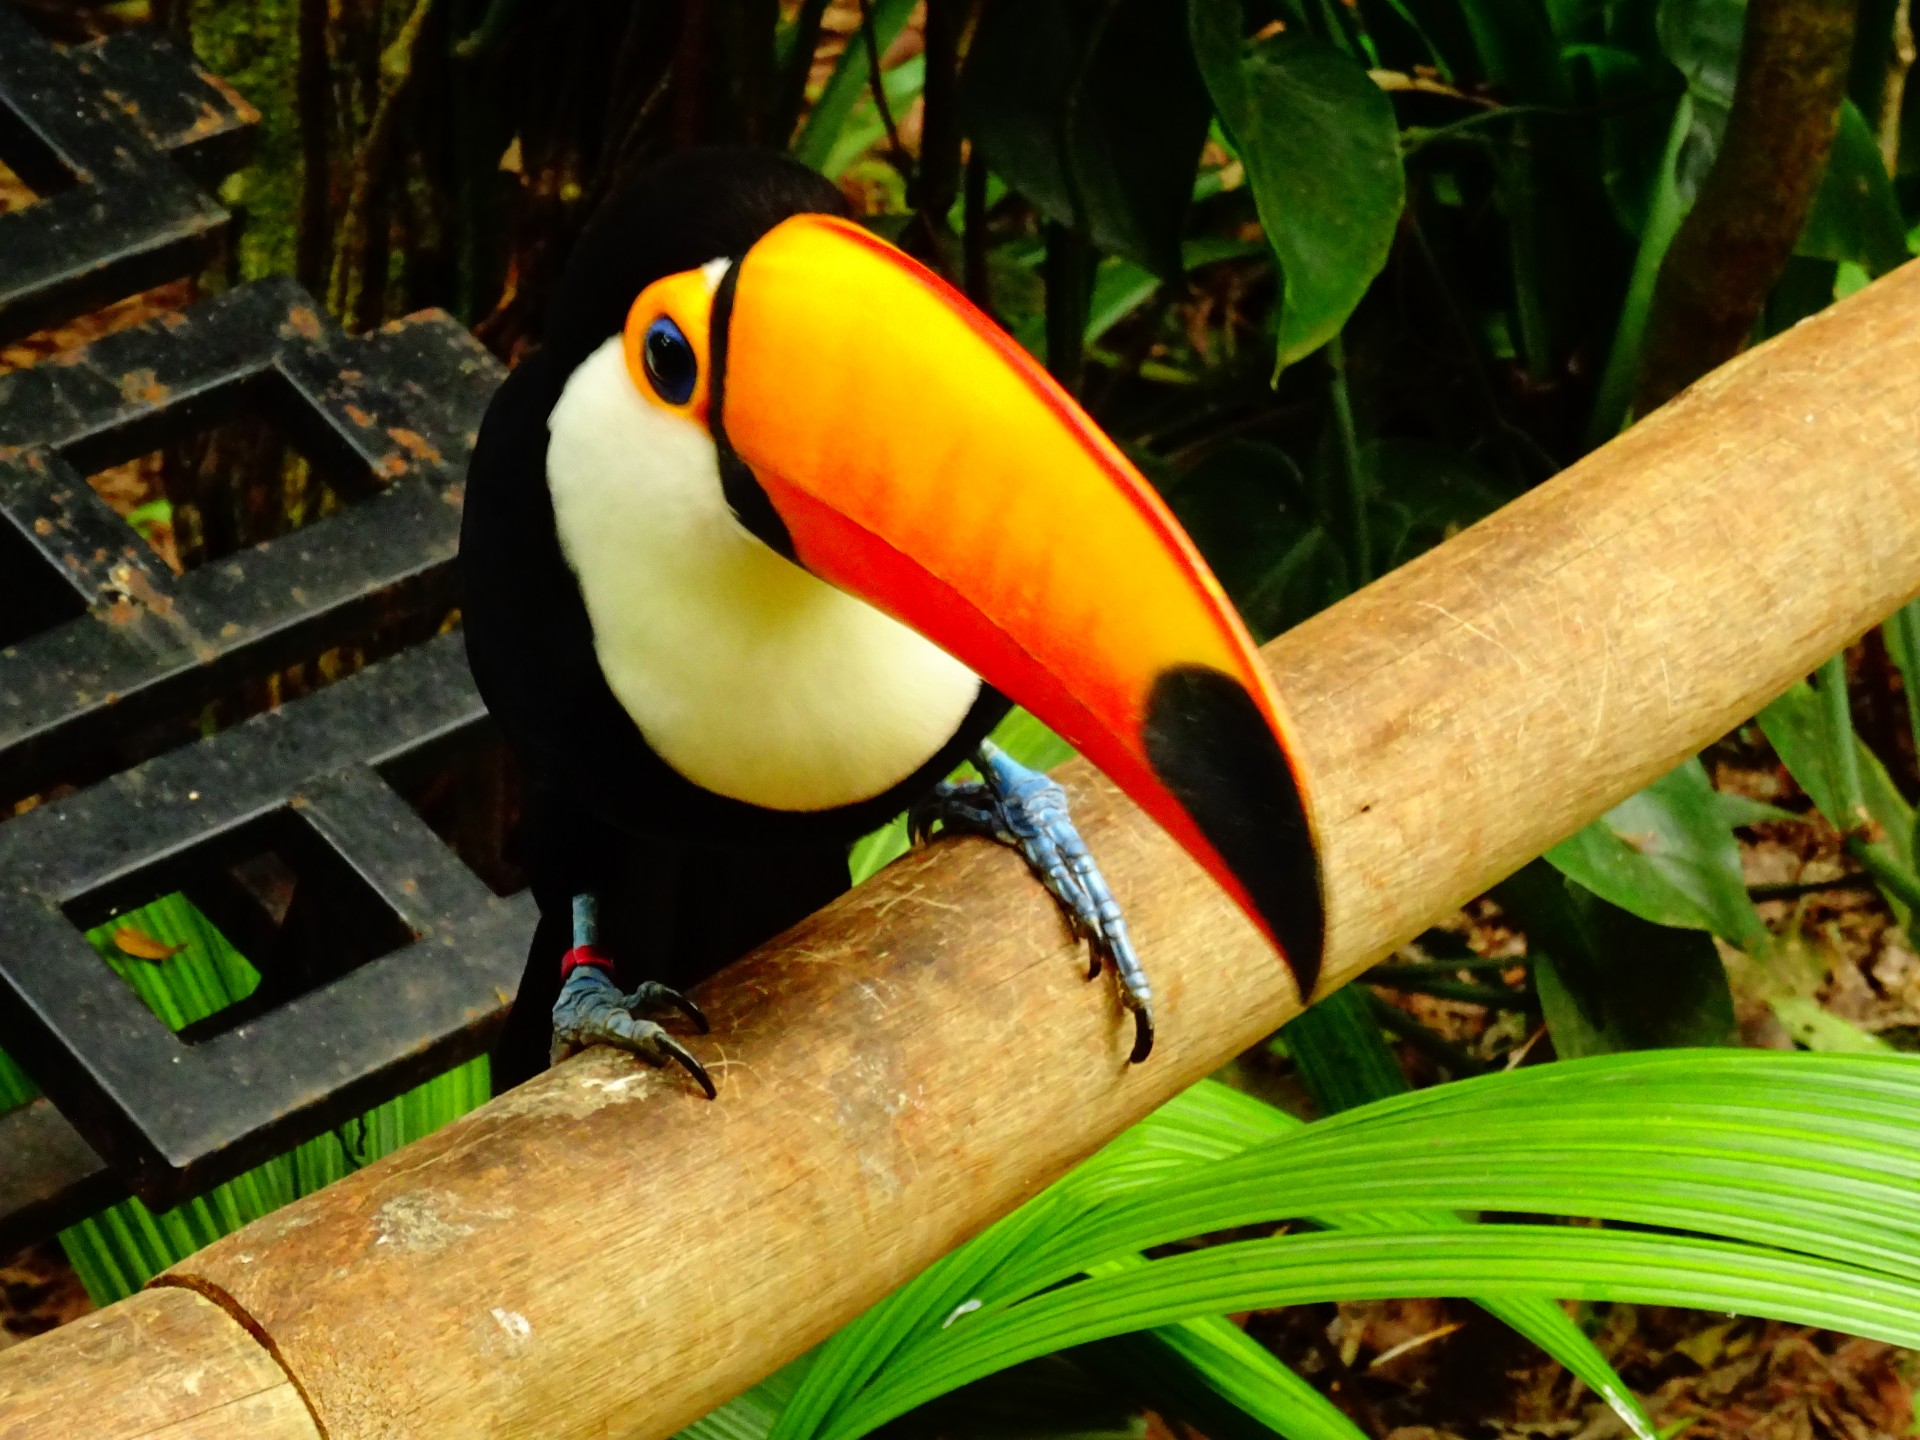 This toucan was particularly friendly.